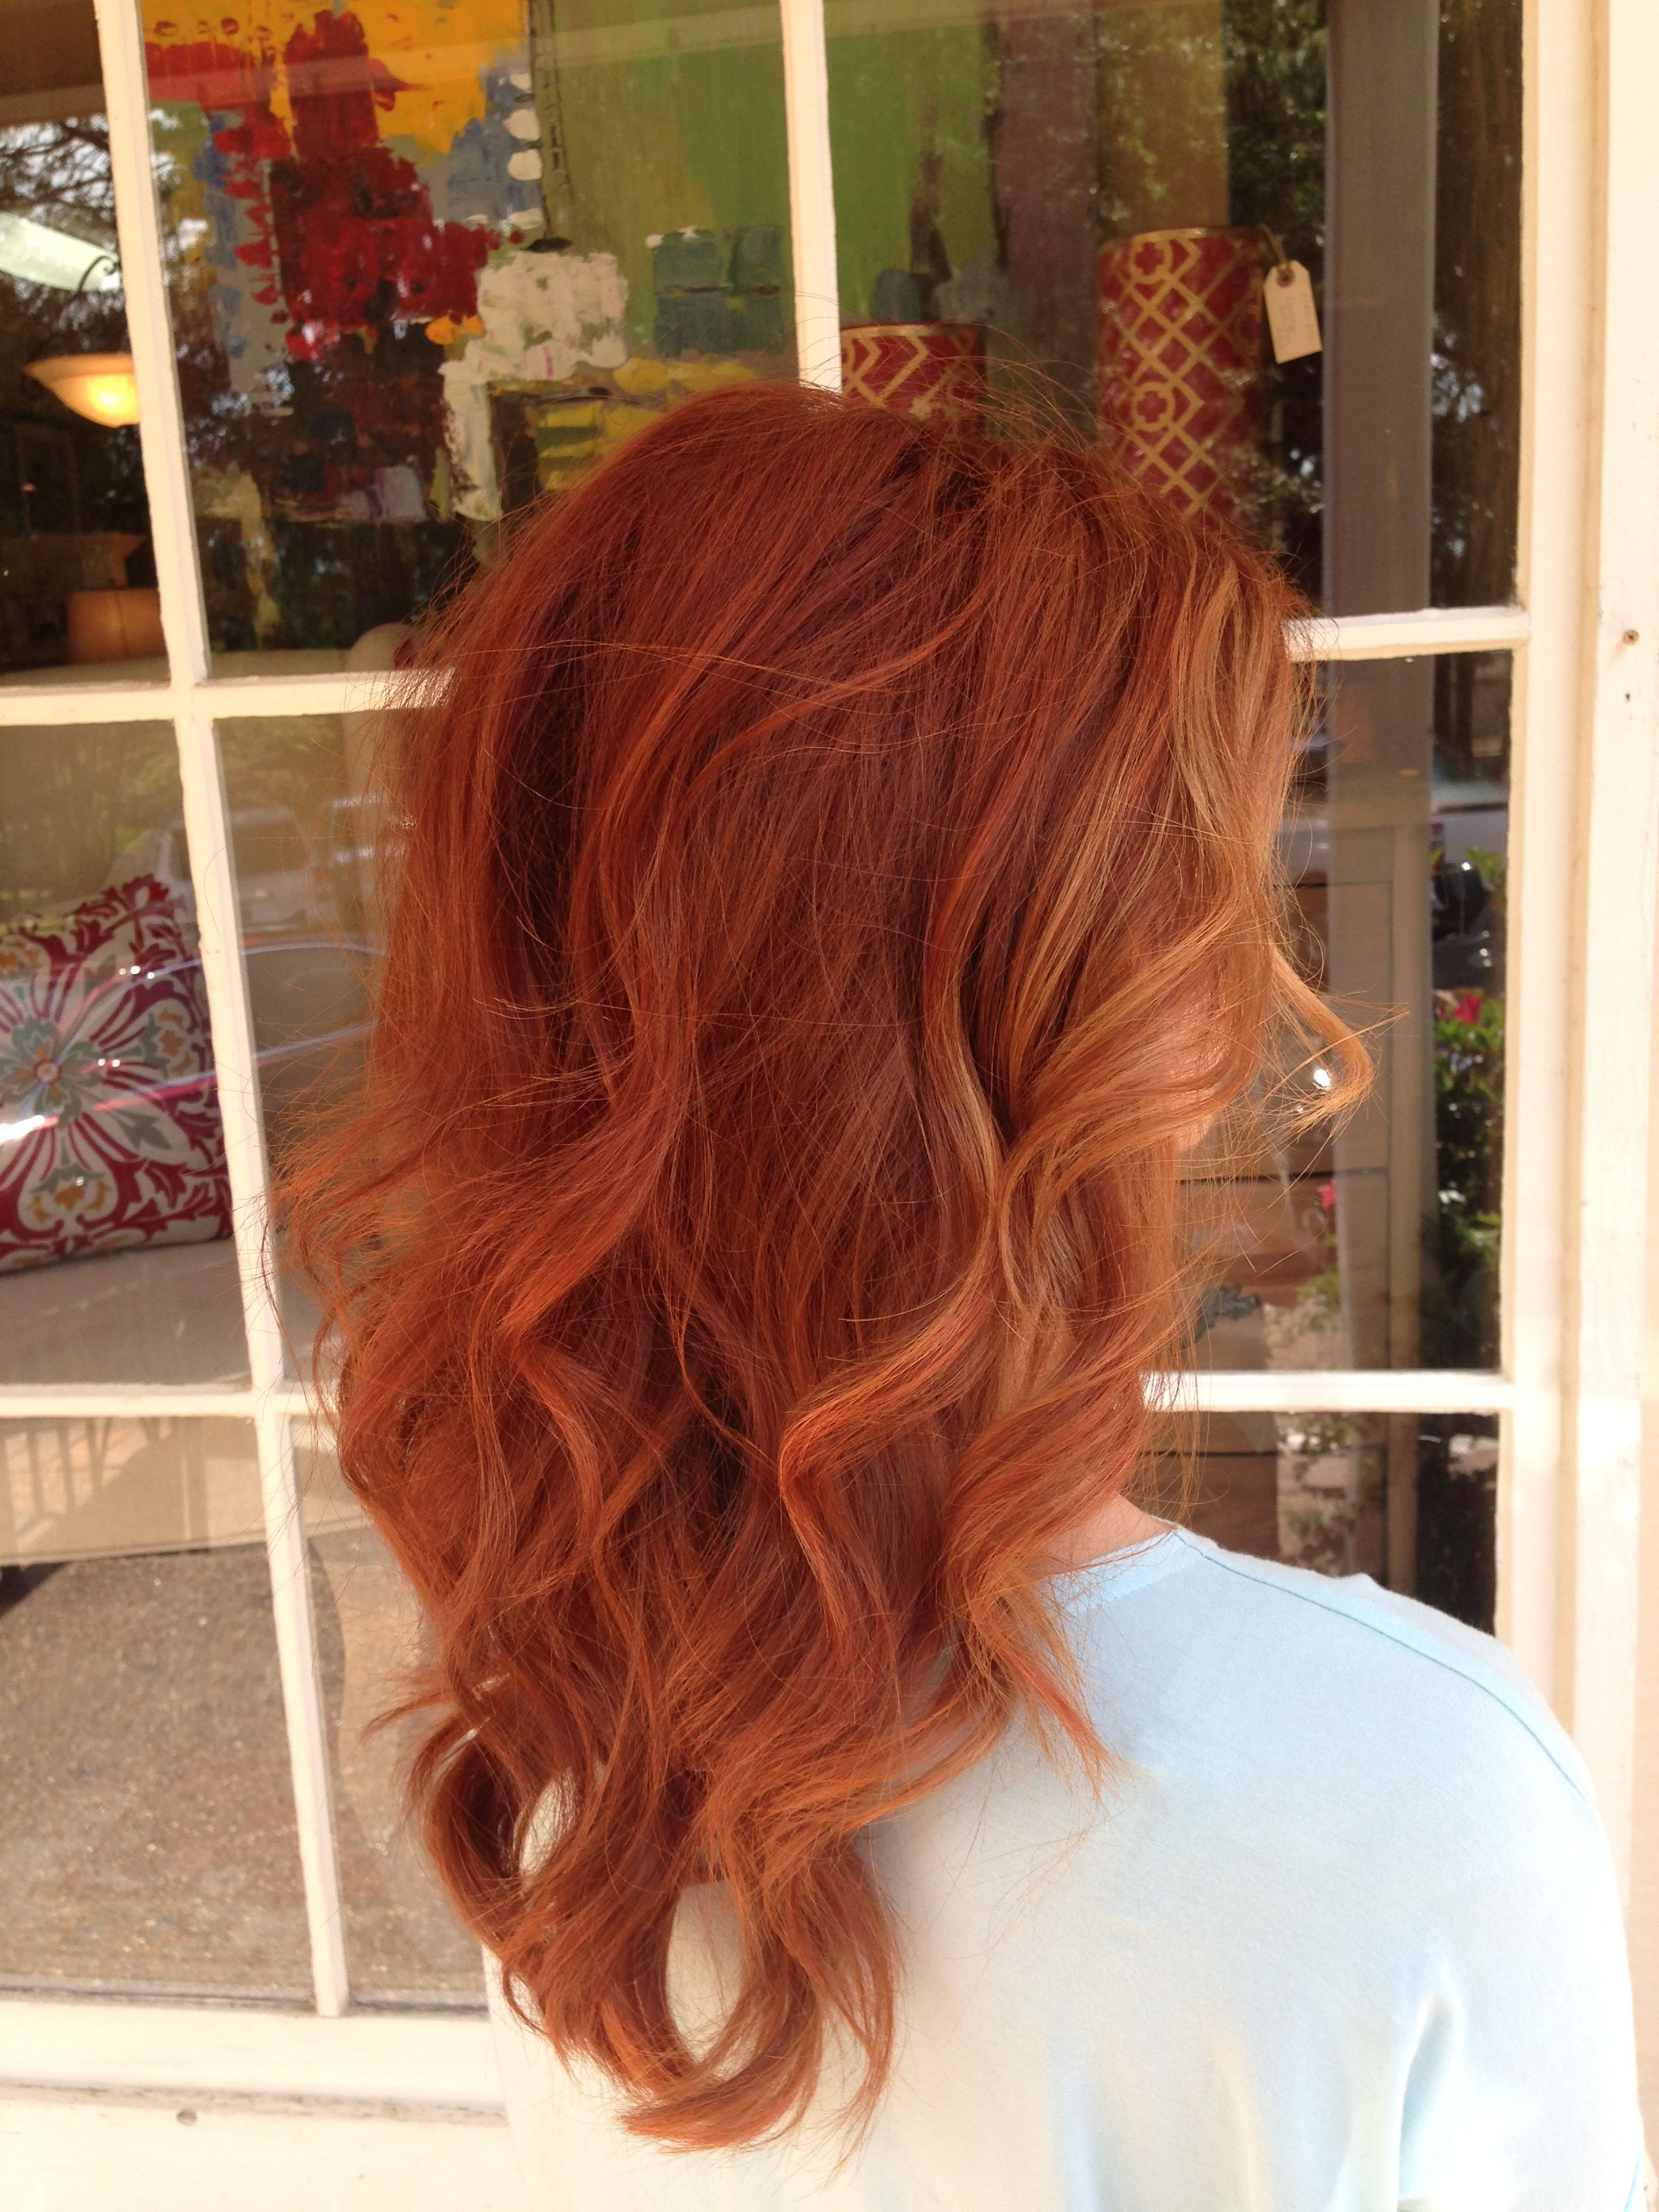 Fall Winter 2014 Hair Color Trends Guide Red Hair Color Hair Color Trends Auburn Hair